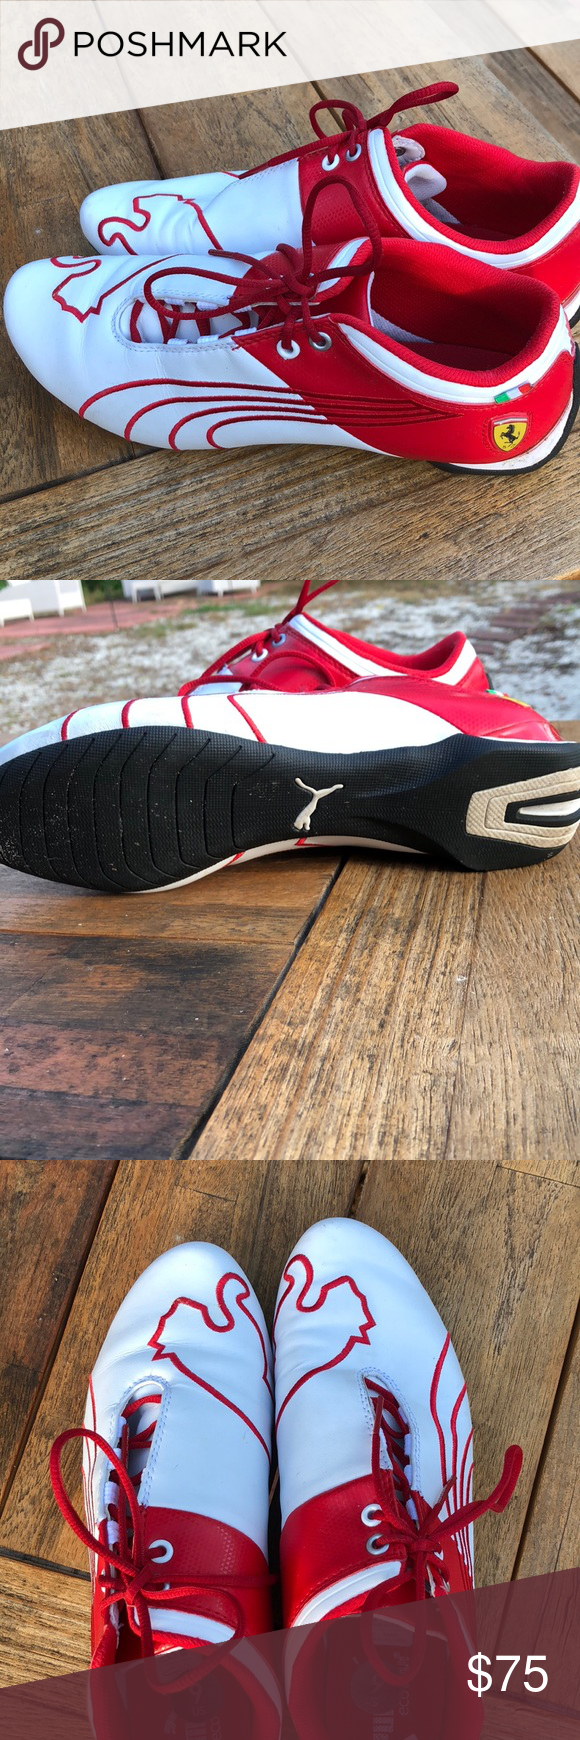 e6d37769305463 Puma Ferrari shoes These are brand new pumas never worn they have a puma on  the